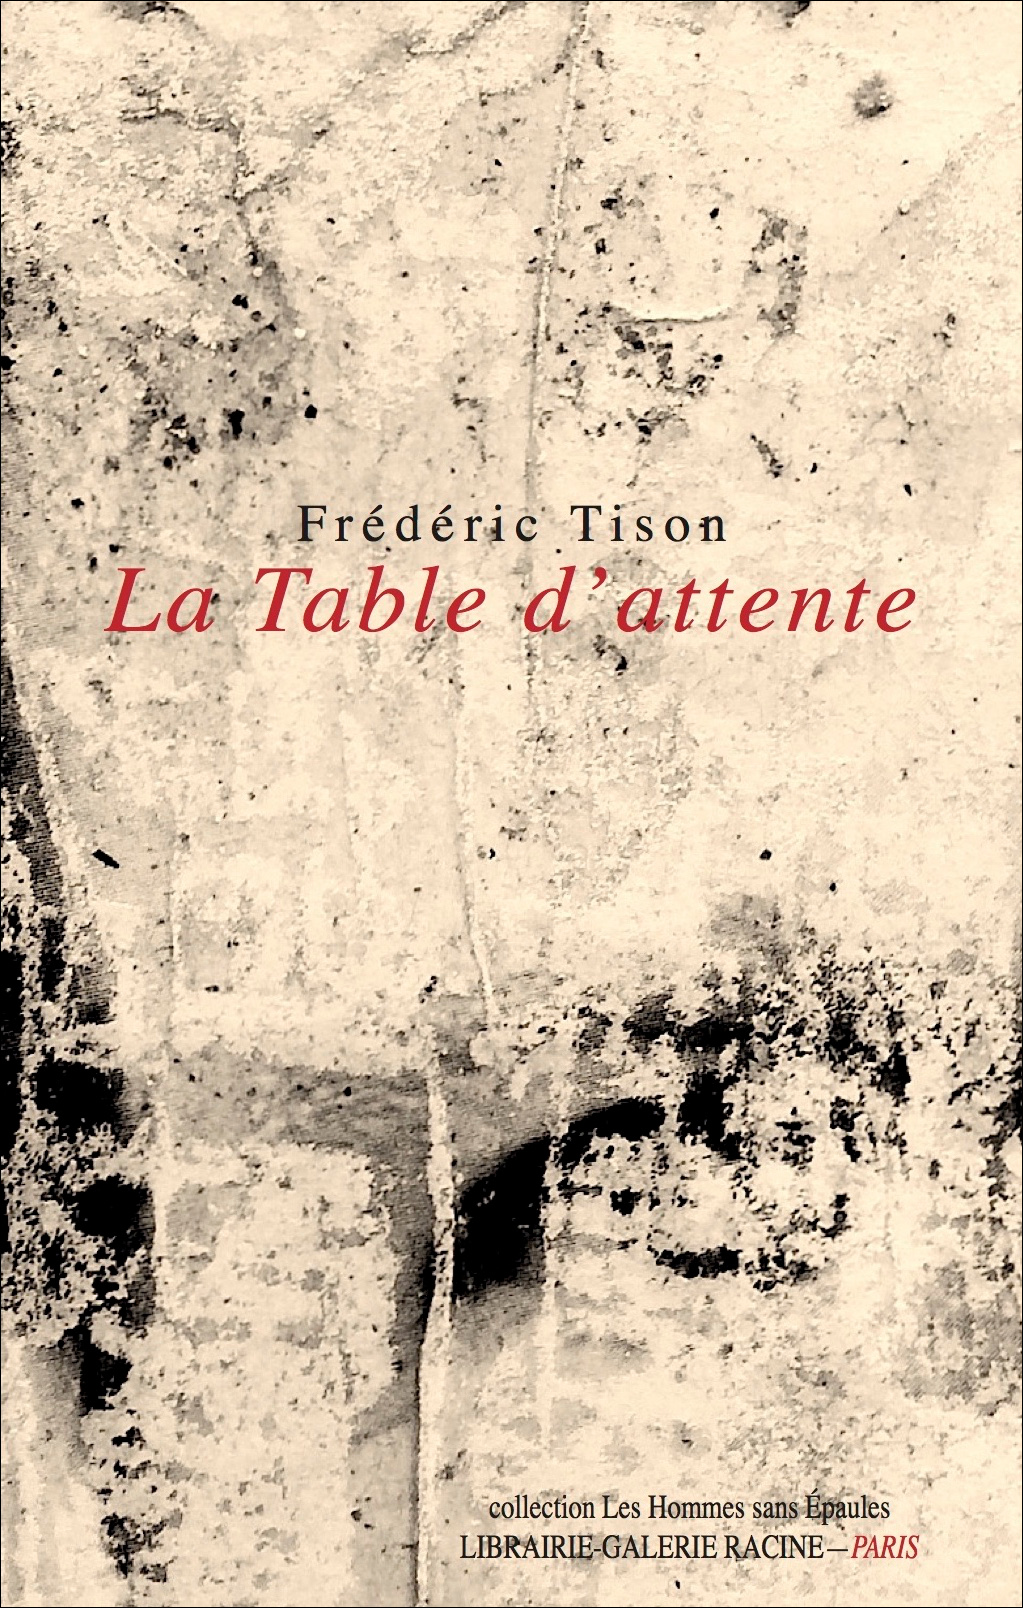 TISON Frédéric - La table d'attente